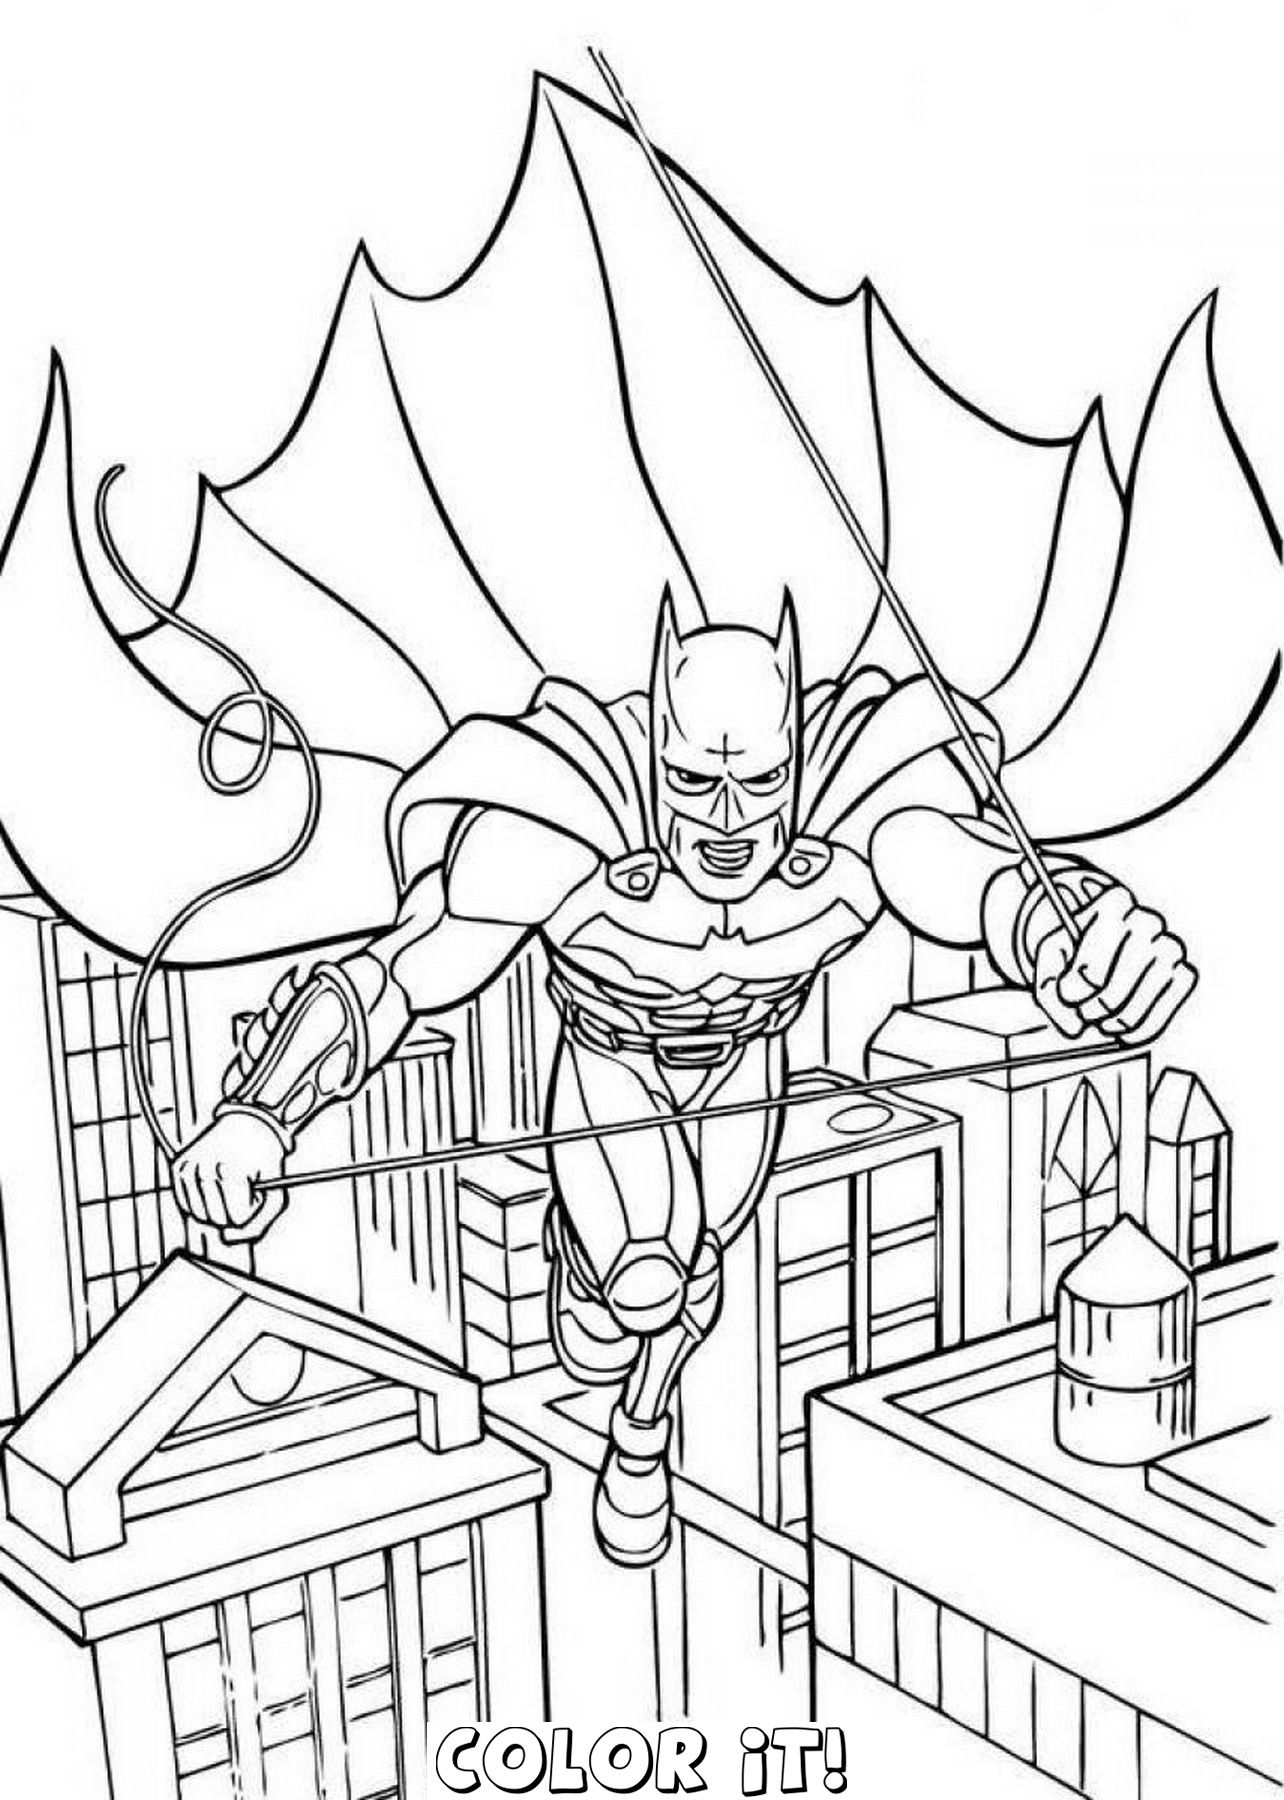 Free Batman Coloring Pages To Print - Coloring Home